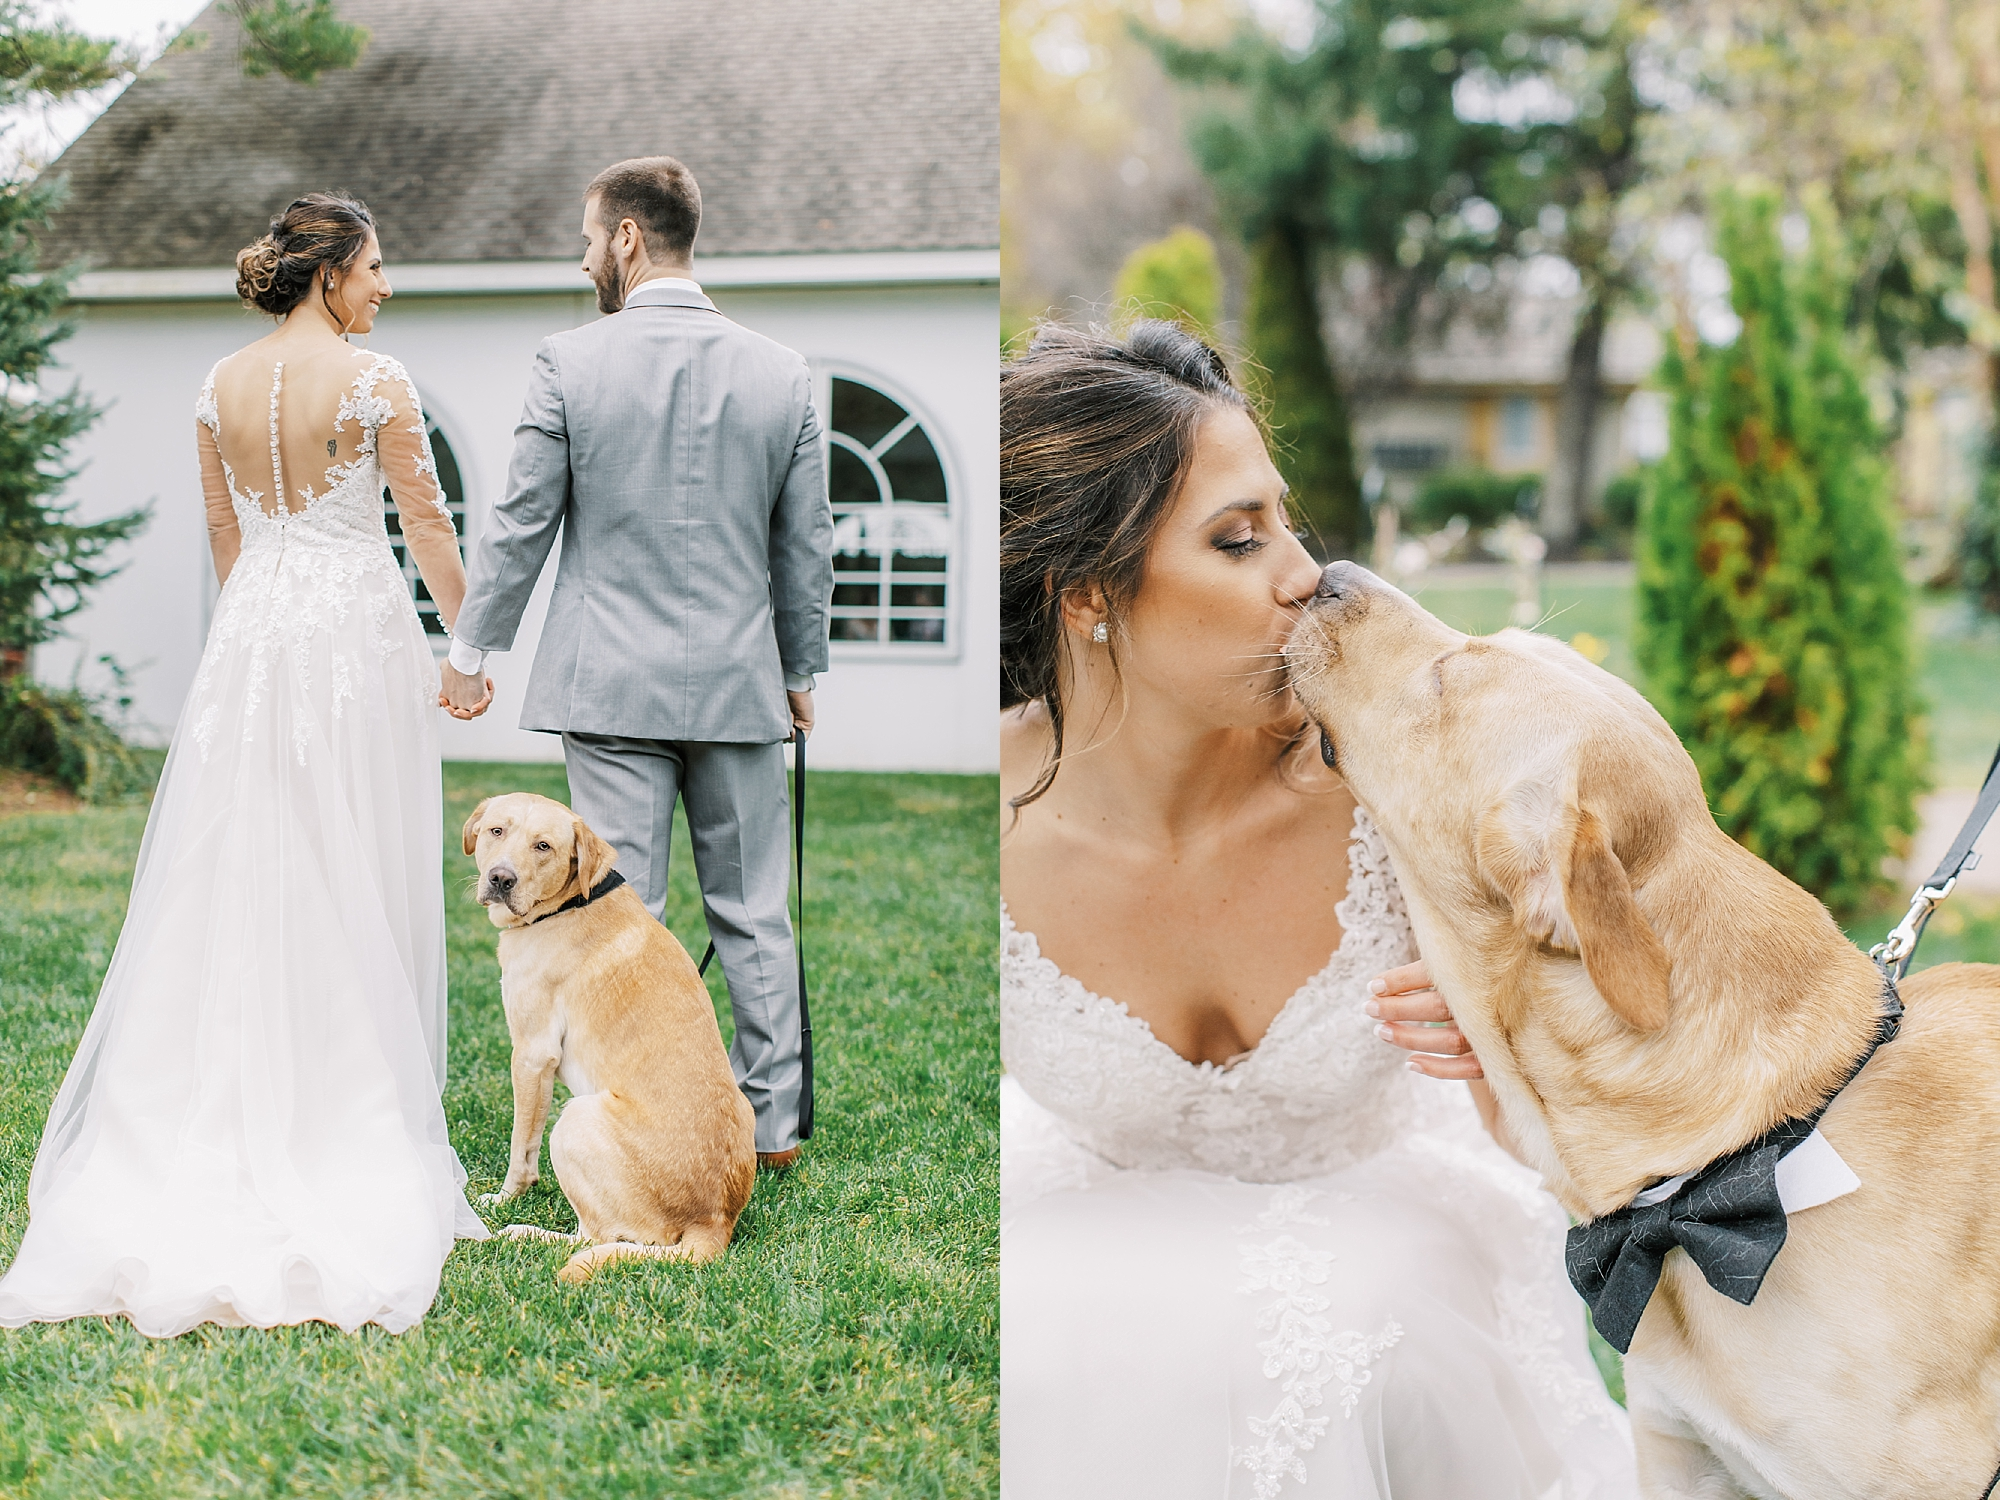 Sweet Garden Wedding Photography Abbie Holmes Estate in Cape May NJ by Magdalena Studios 0043